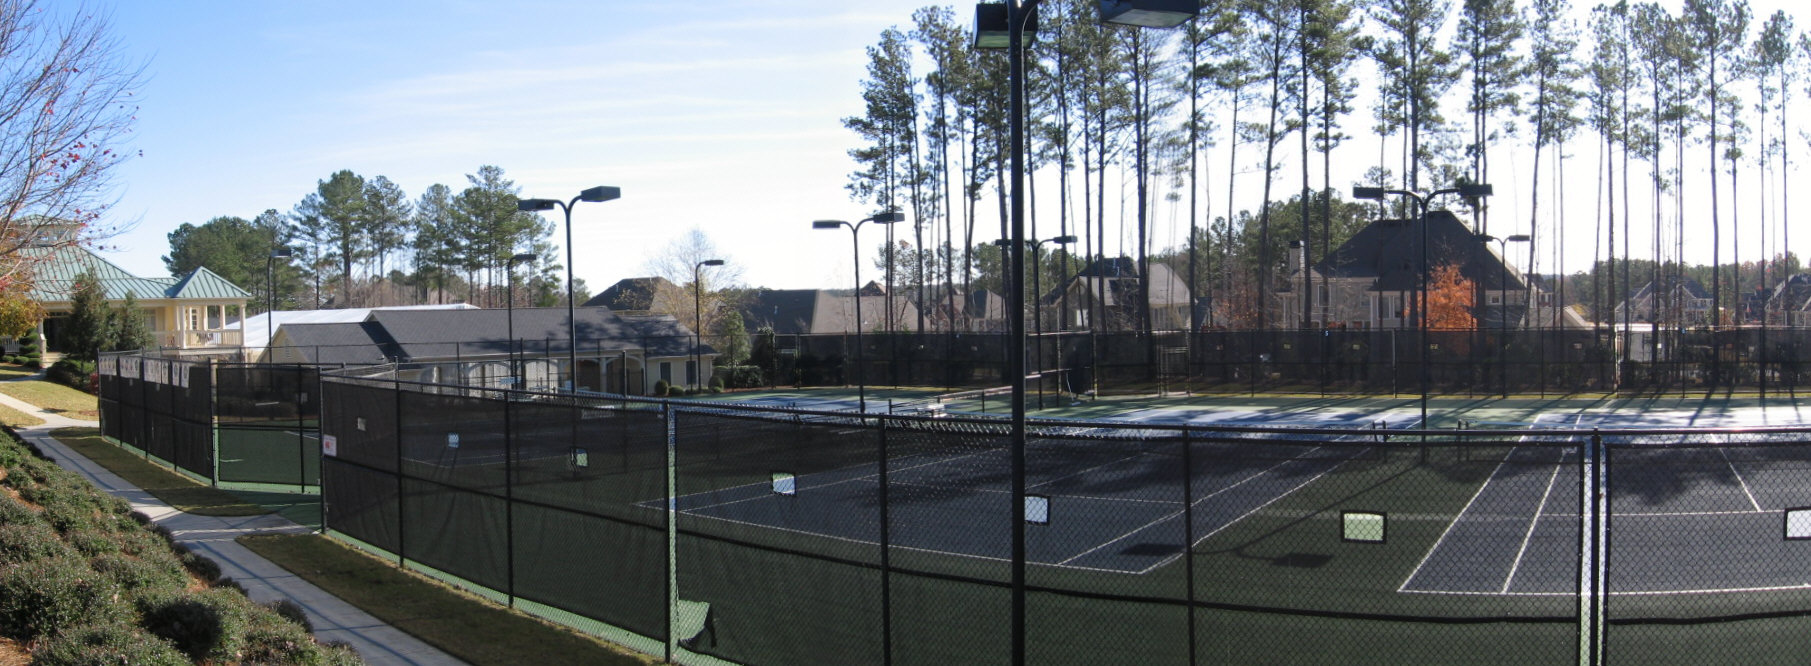 Floodlite Tennis Courts